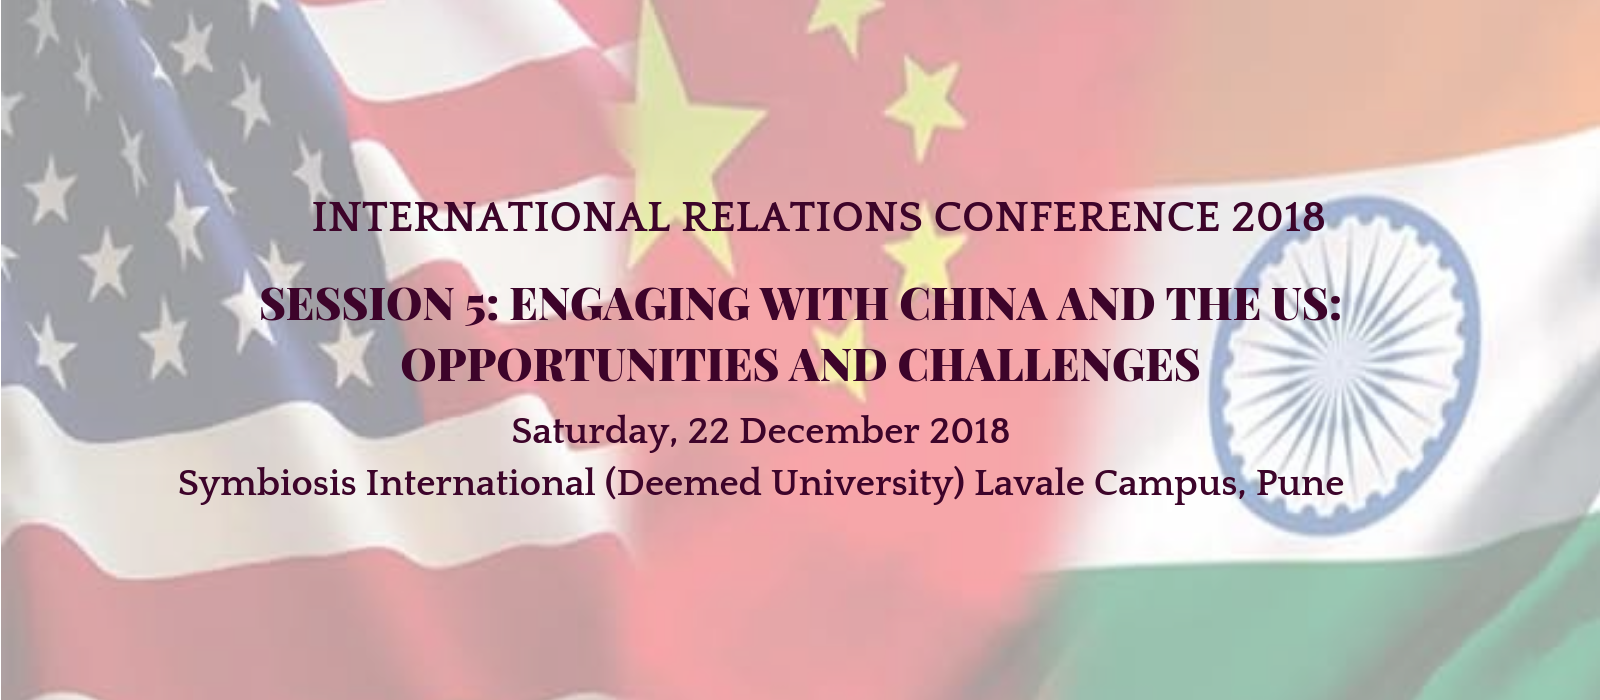 International Relations Conference 2018, Pune - Engaging With China And The Us – Opportunities And Challenges